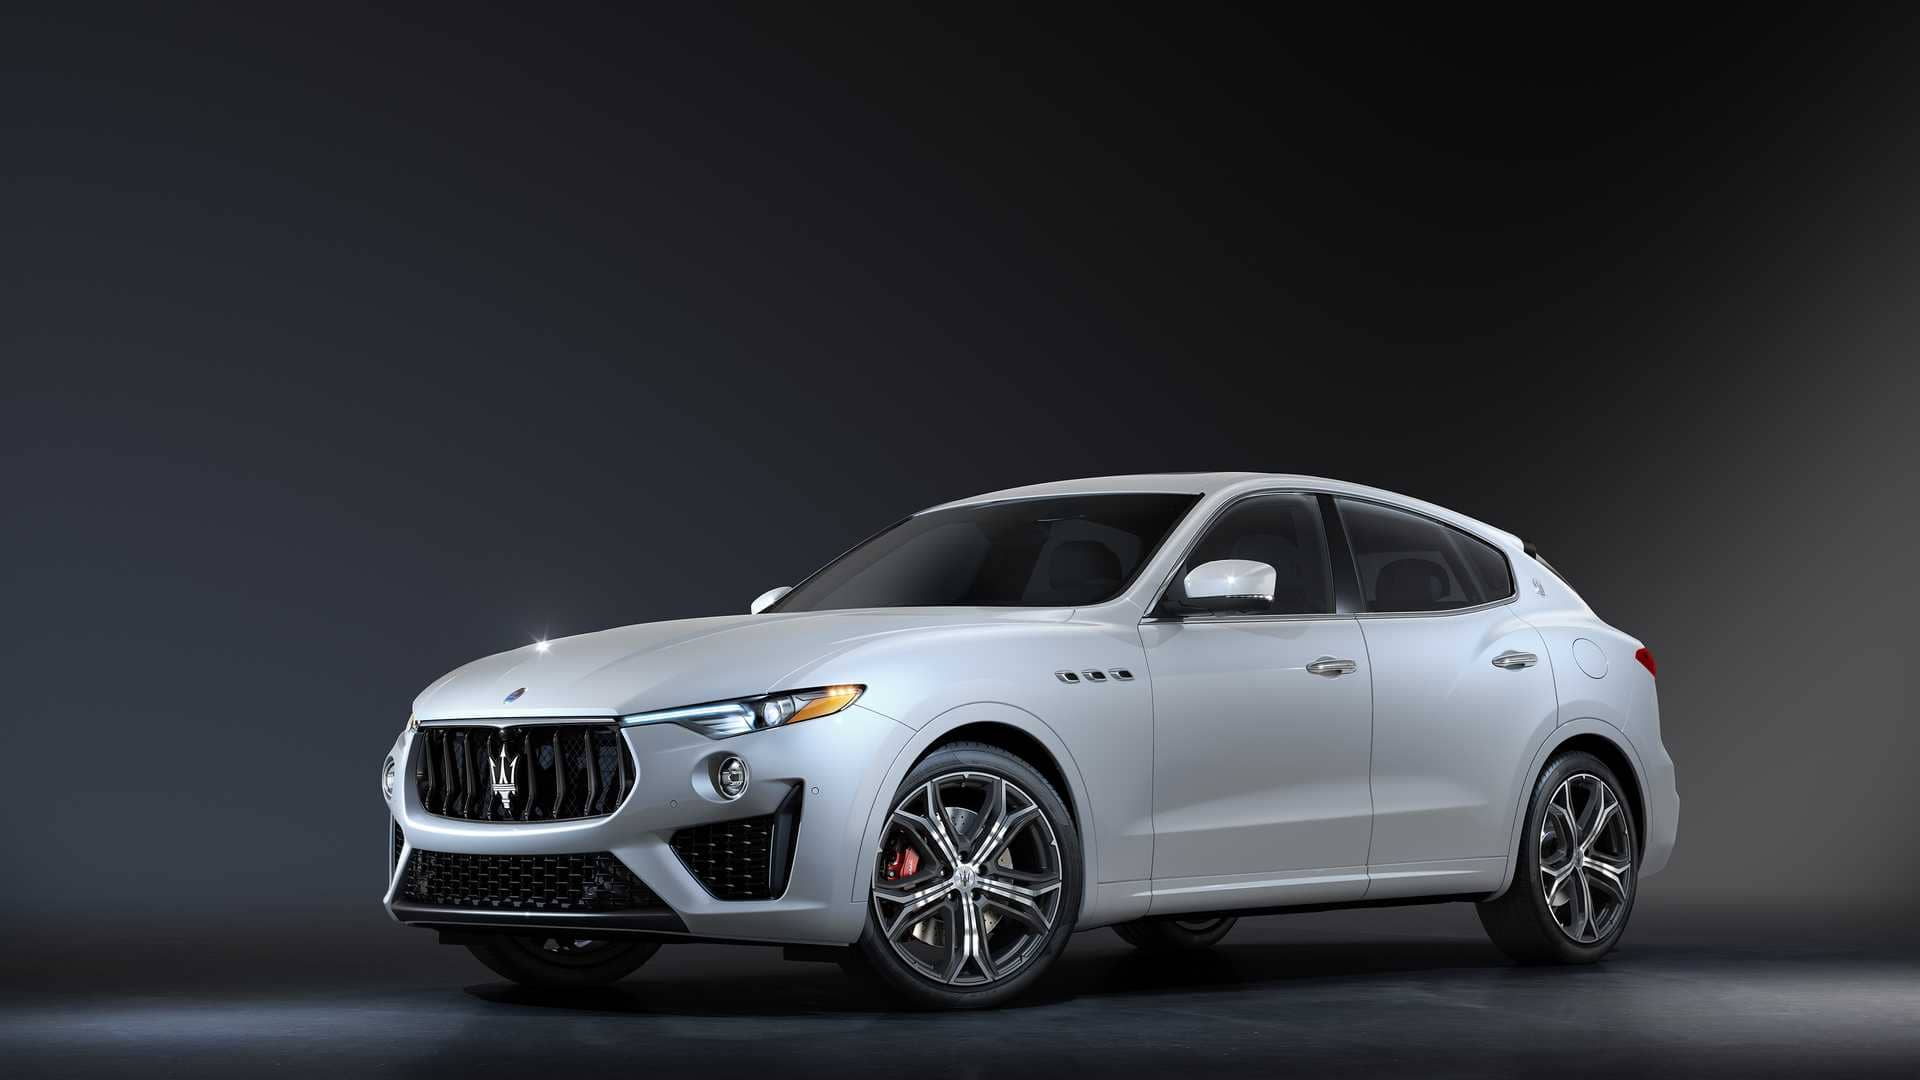 2020-maserati-levante-gt-sport-packagesssdsd